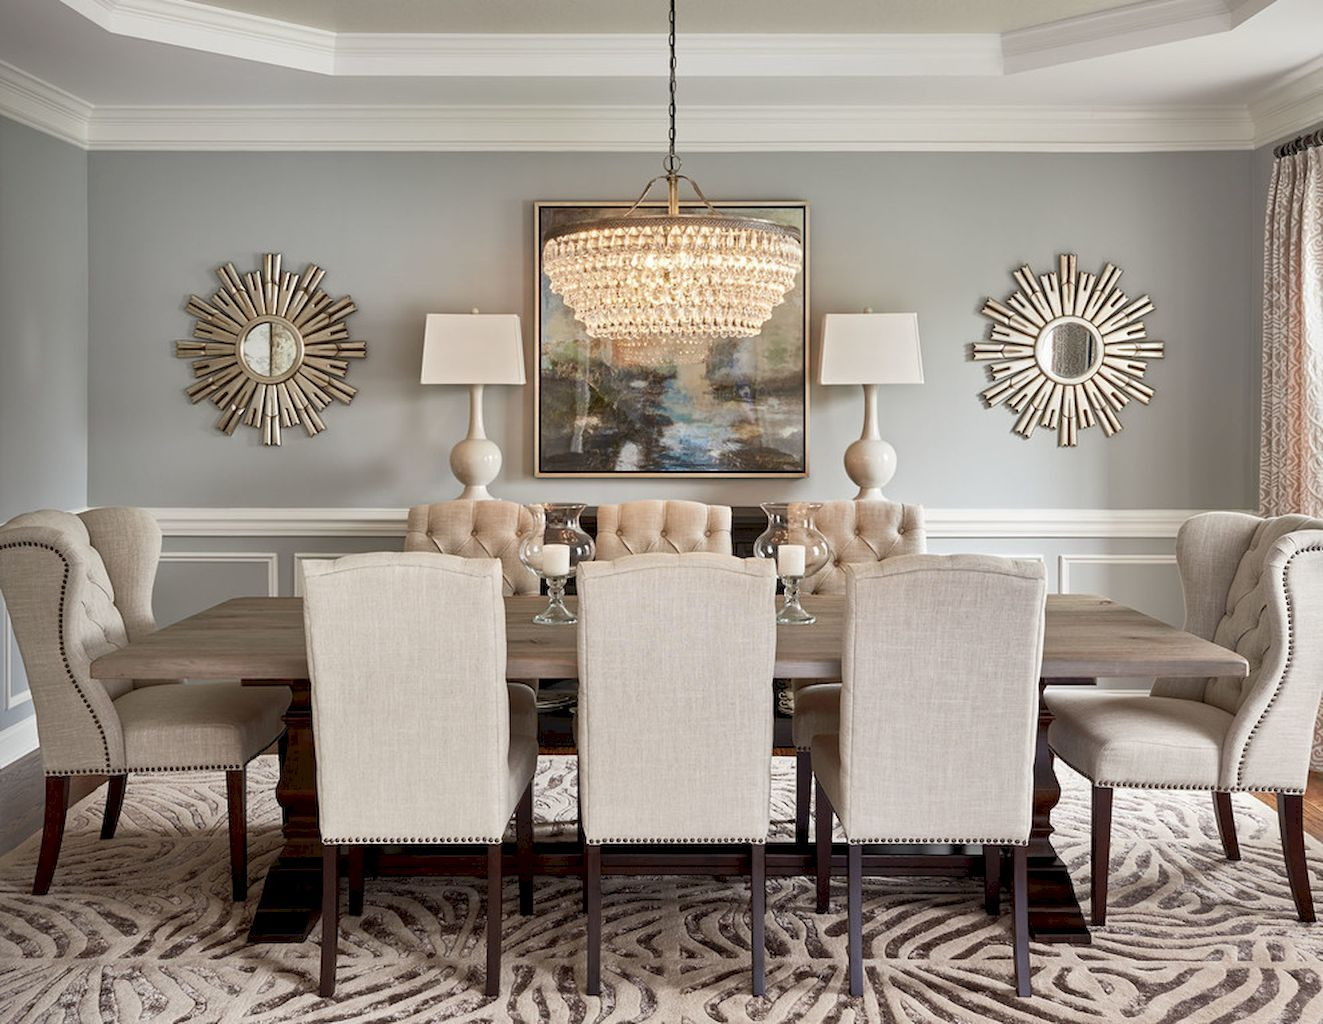 Elegant Dining Room Chandeliers Unique Awesome 110 Beautiful And Elegant Dining Room Chandelier Lighting Inspiration Design